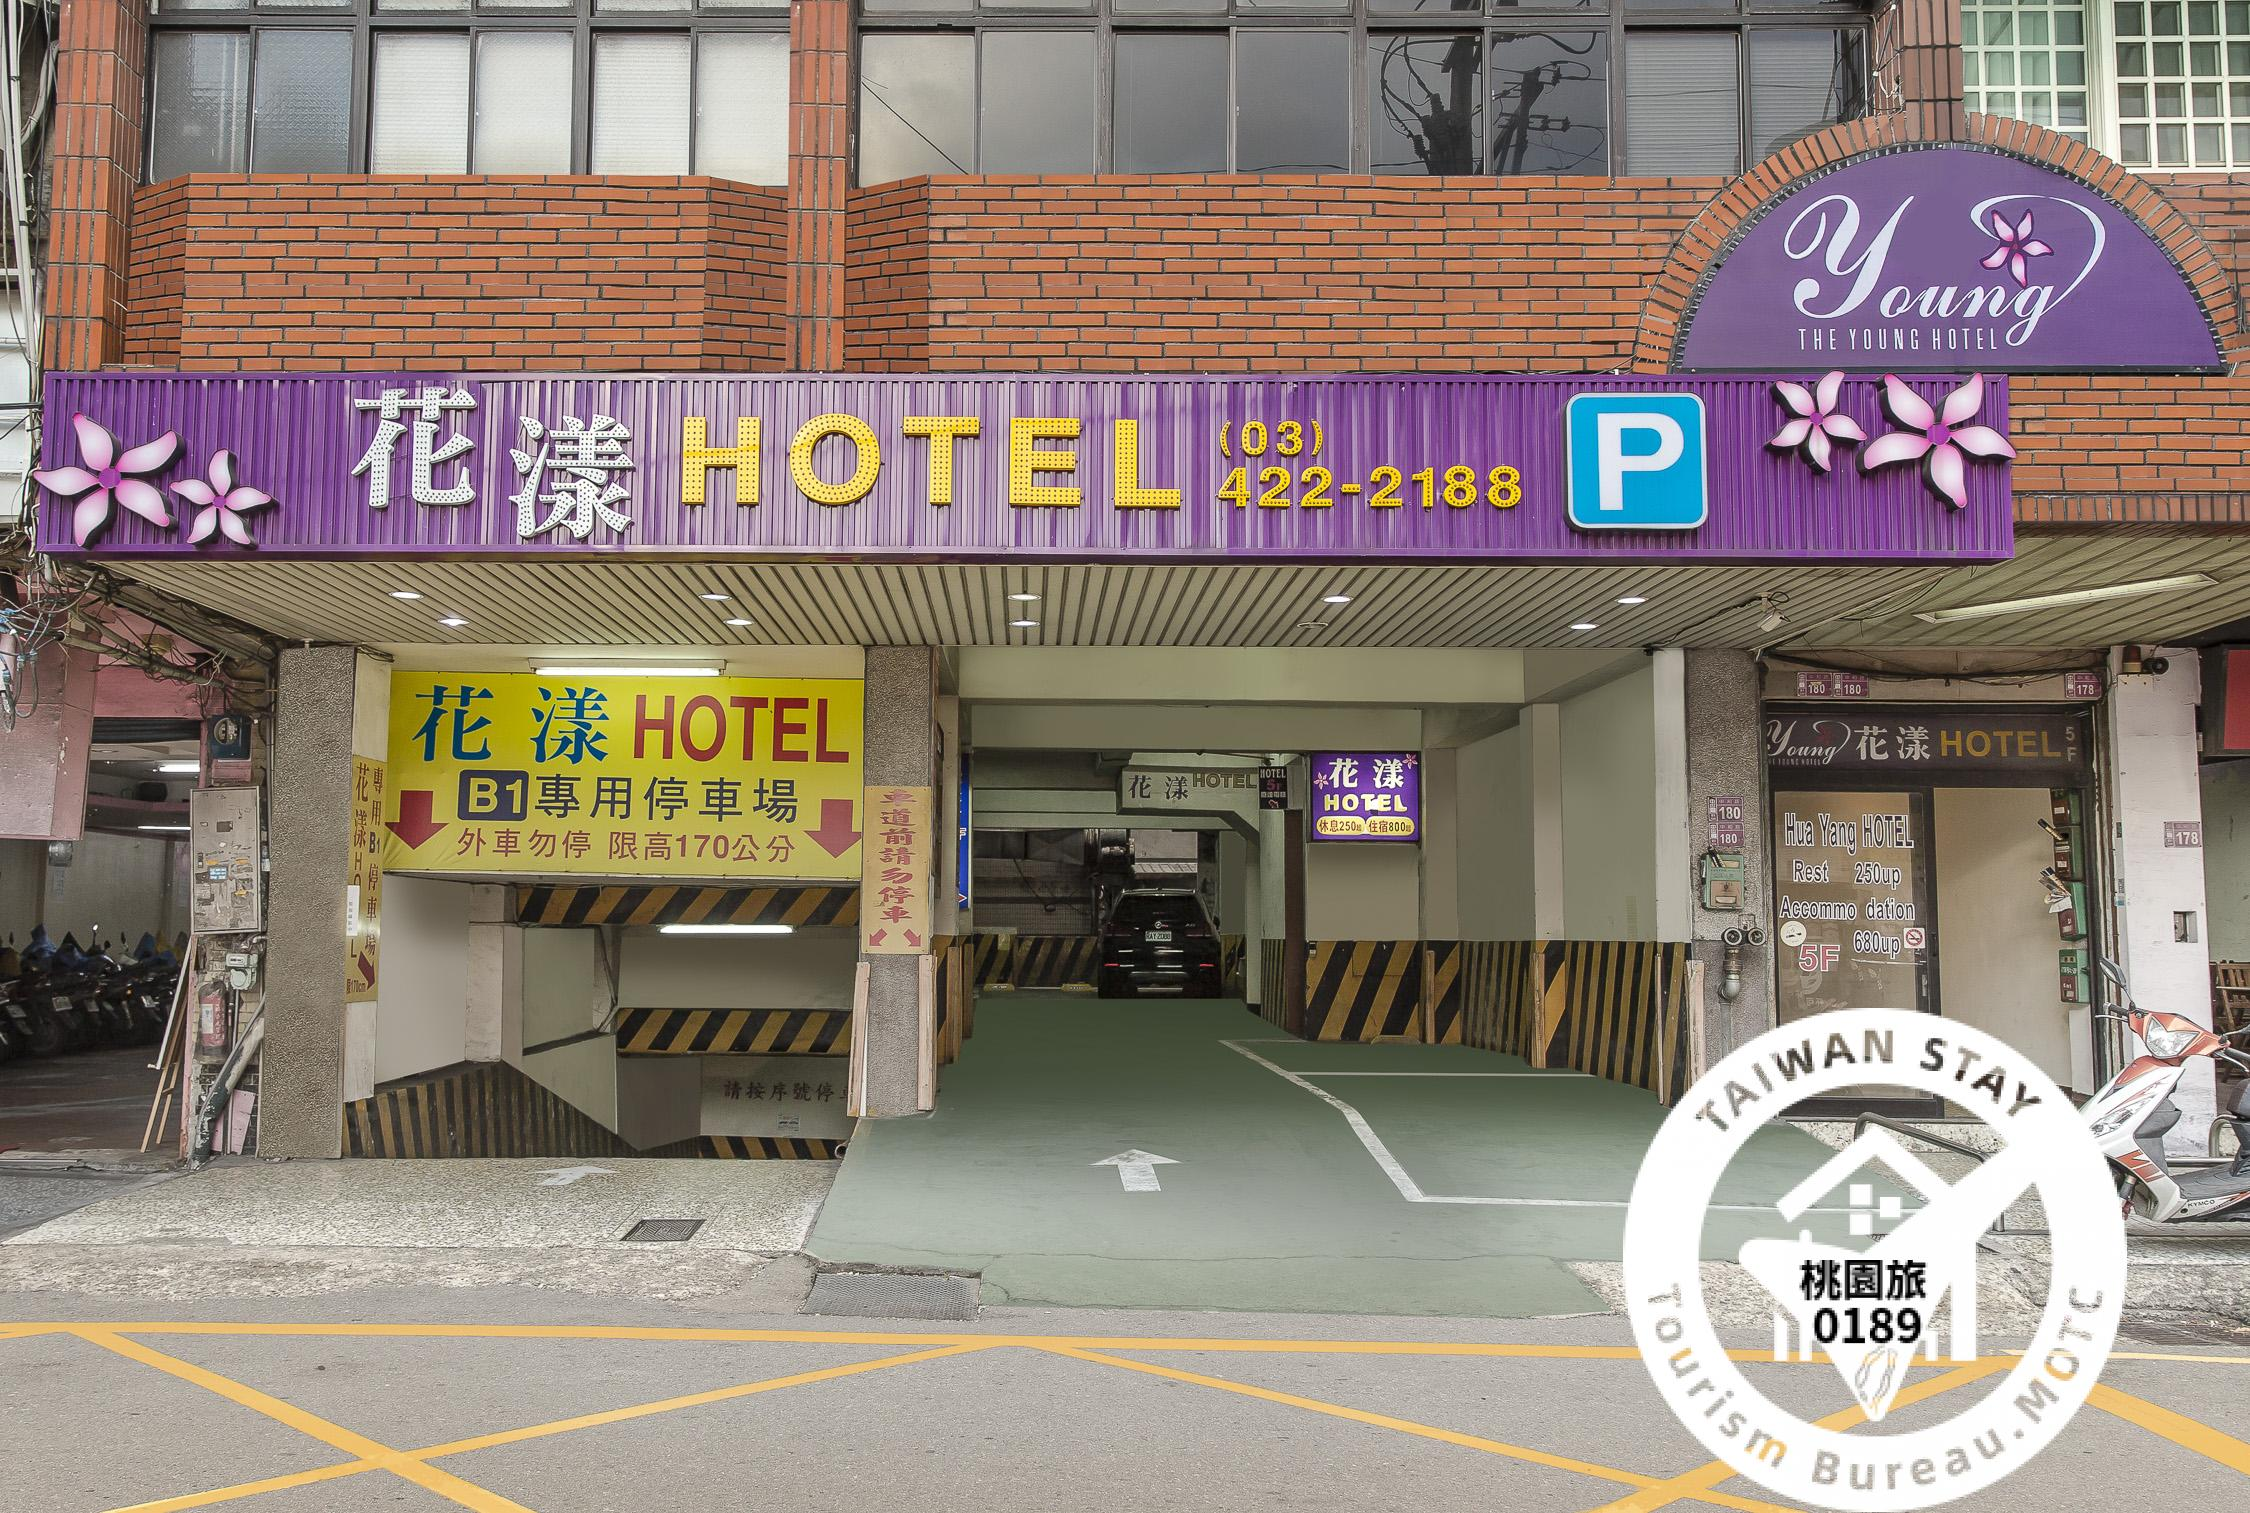 THE YOUNG HOTEL